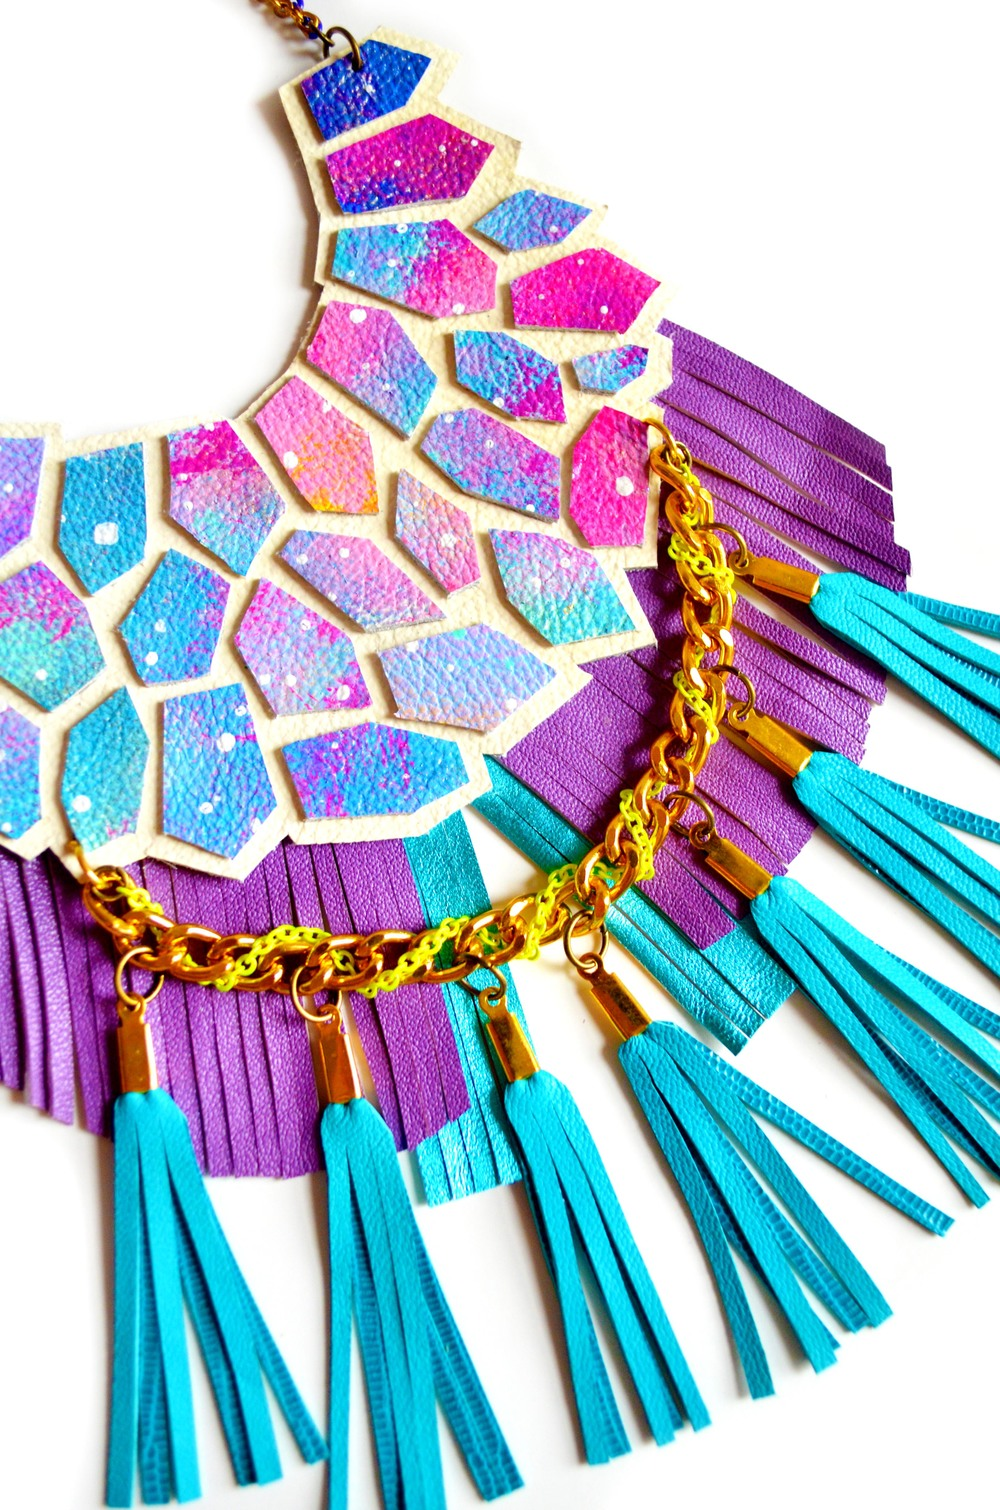 Turquoise Statement Necklace, Neon Woven Chain, Nebula Geometric Hexagon Fringe, Galaxy Leather Jewelry 7.jpg